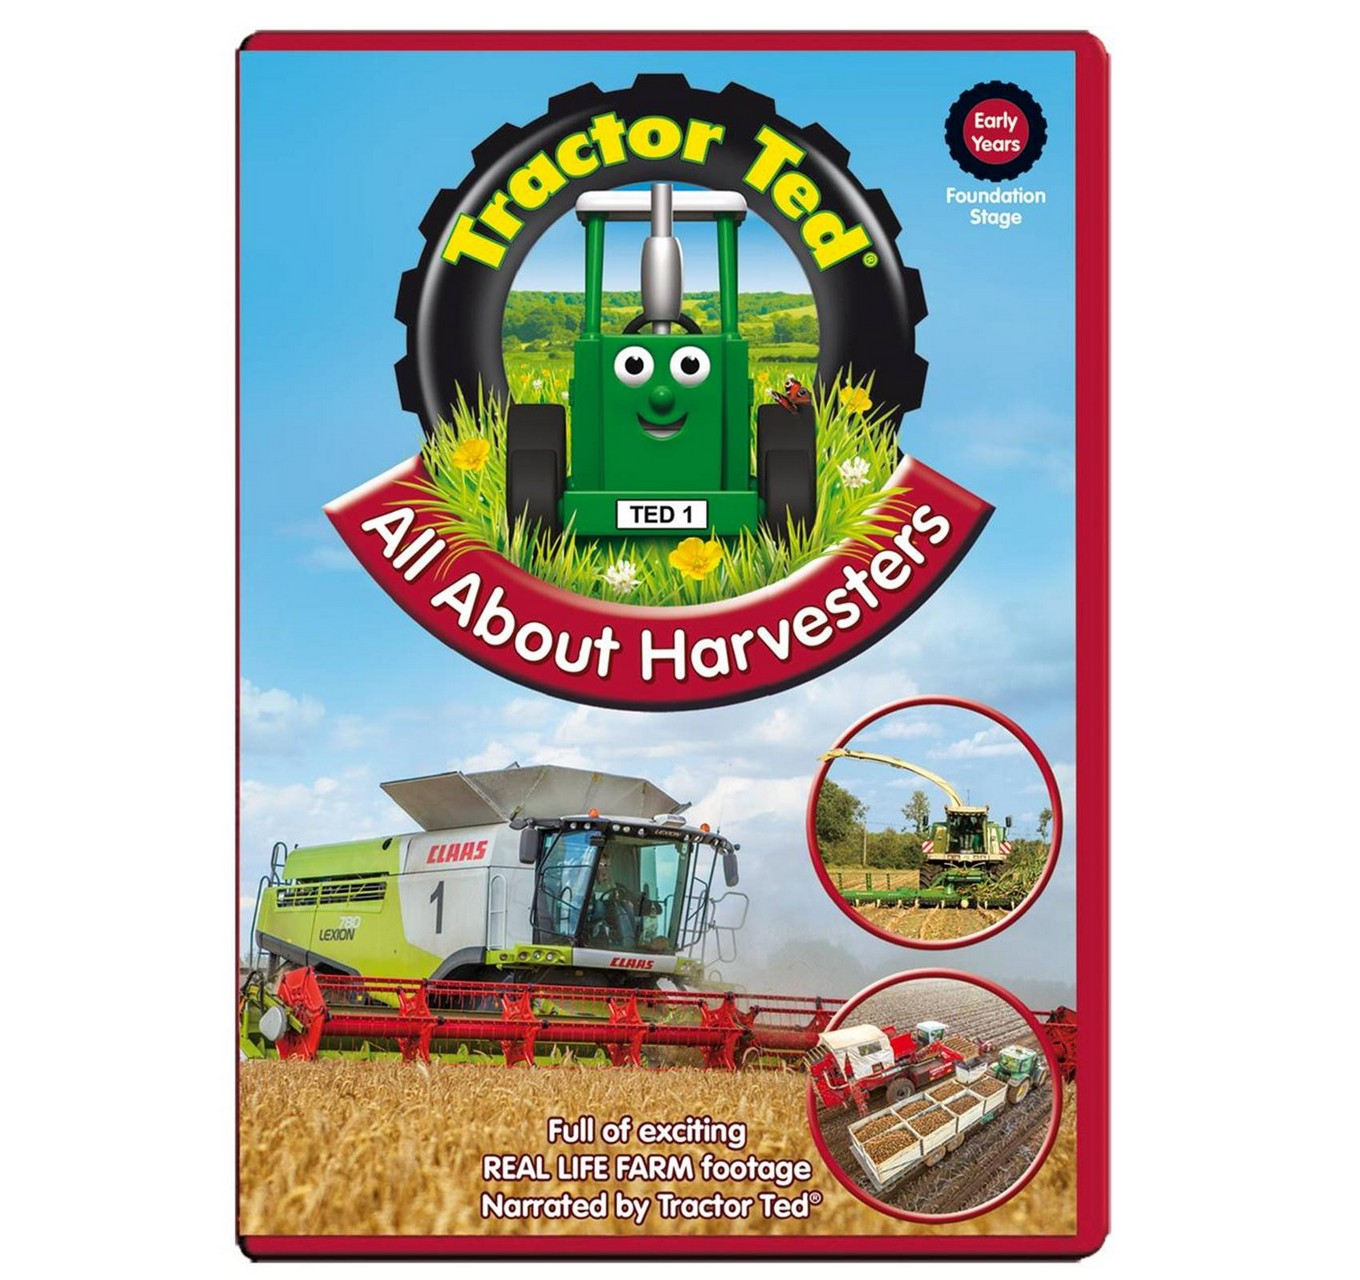 Tractor Ted All About Harvester S Dvd Tractor Ted